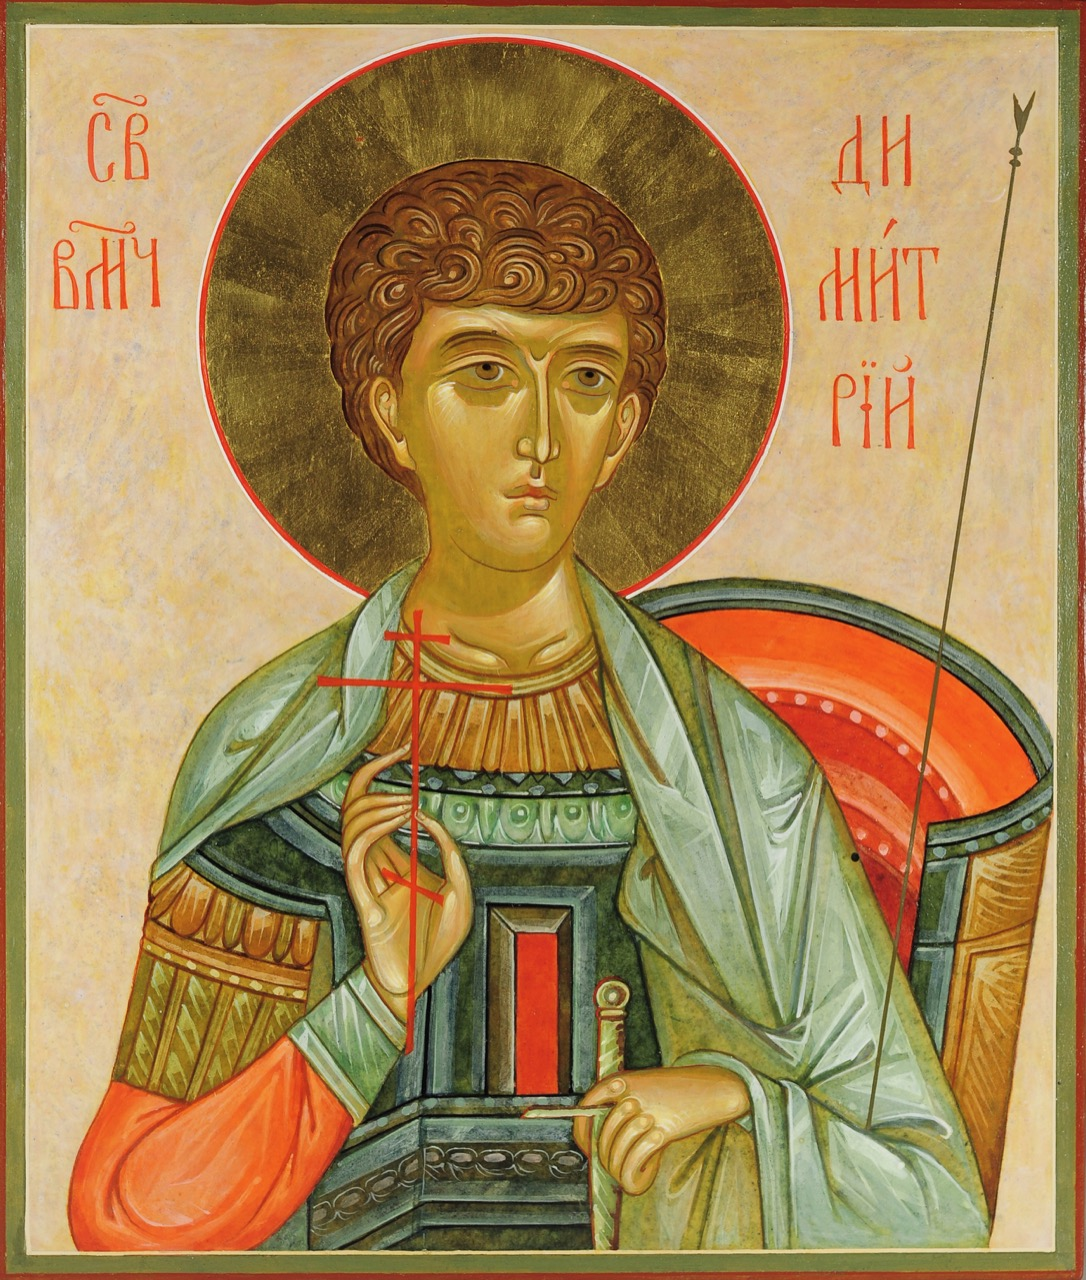 St Great-Martyr Dimitri